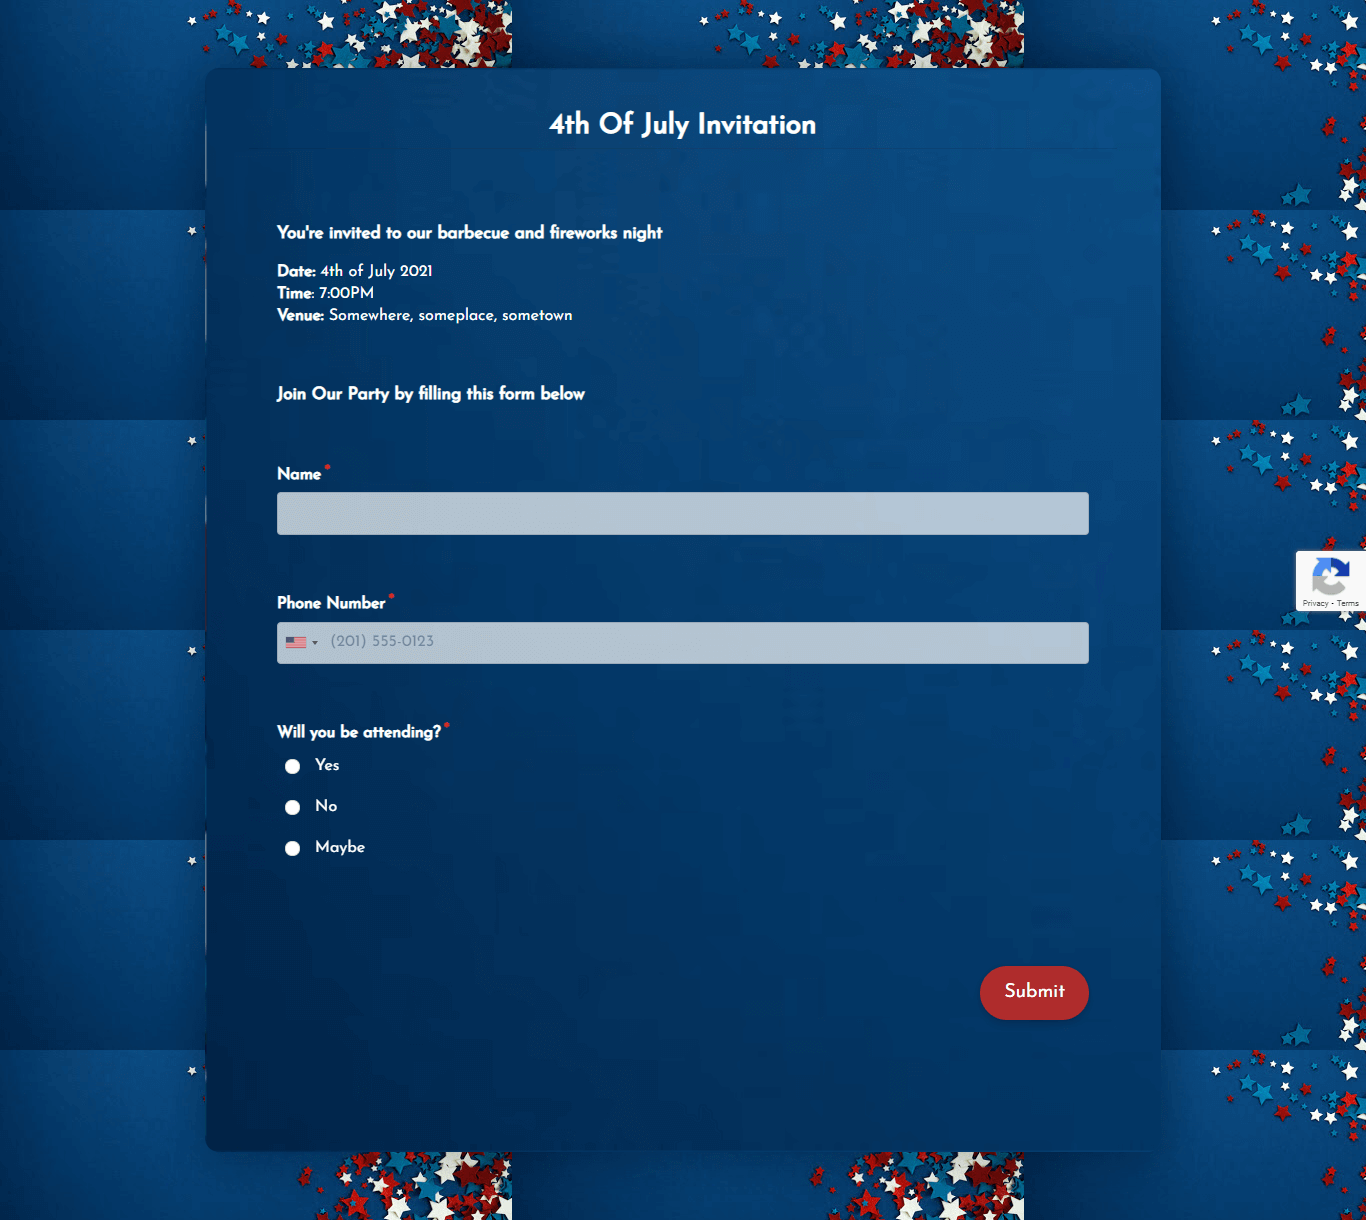 Fourth Of July Invitation Form Template template